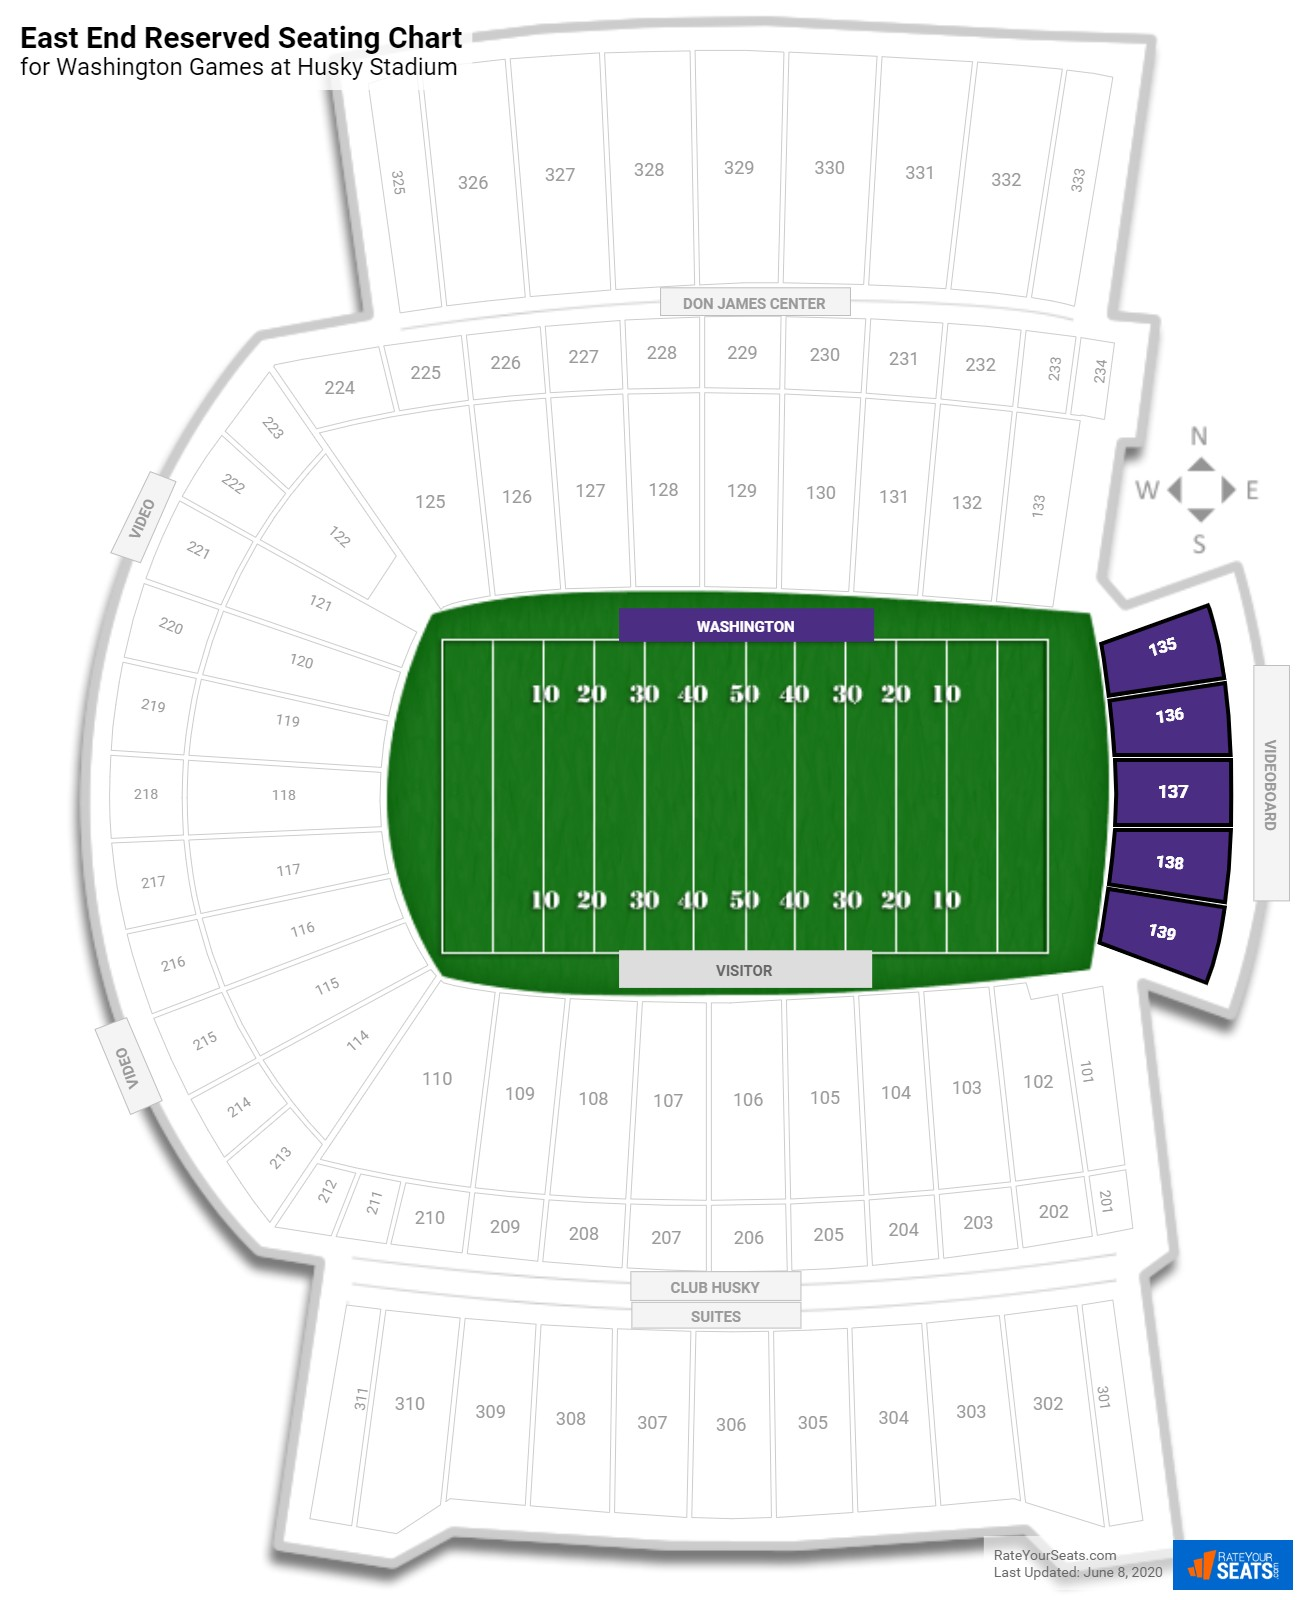 Husky Stadium East End Reserved seating chart